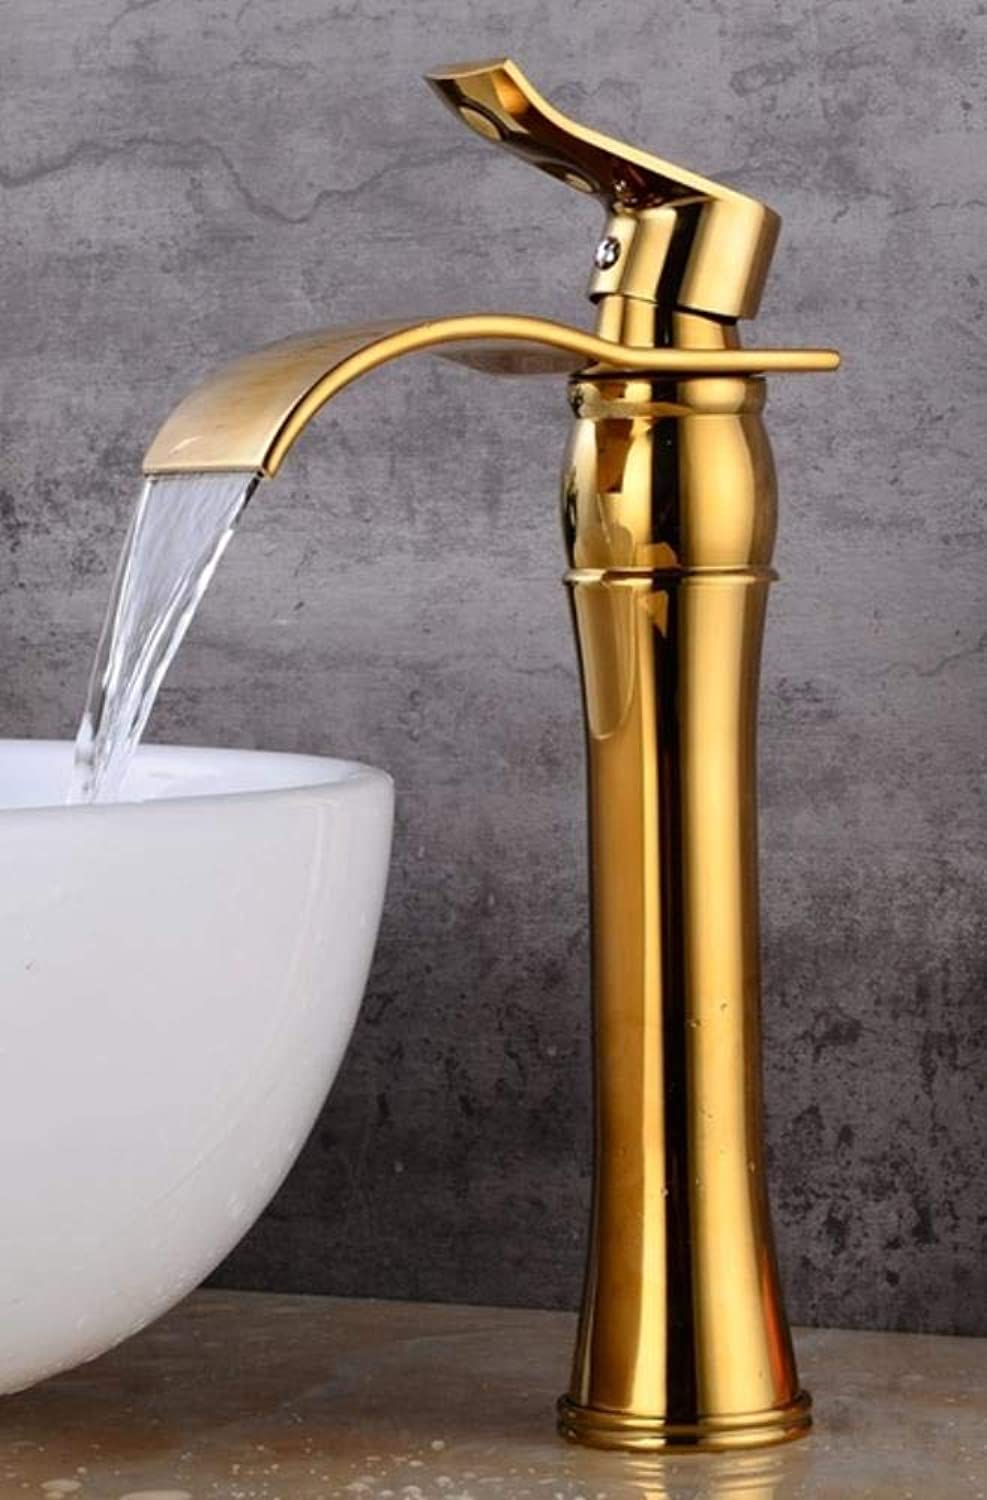 Kai&Guo s Antique Bronze Bathroom Faucet hot and cold Crane Brass Basin Faucet Waterfall Sink Faucet Single Handle water tap,gold